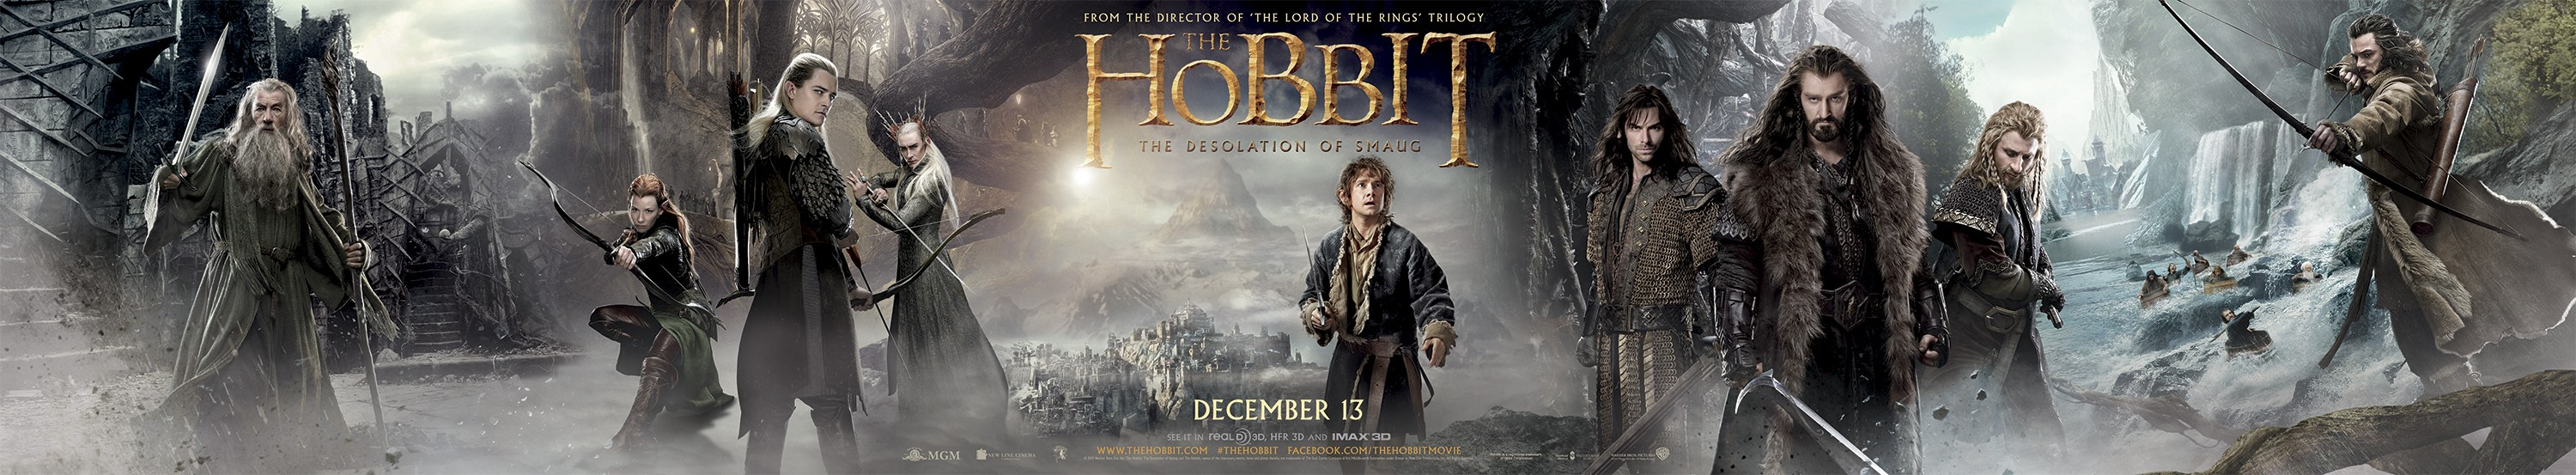 The Hobbit The Desolation of Smaug-Official Poster Banner PROMO XXLG-17OUTUBRO2013